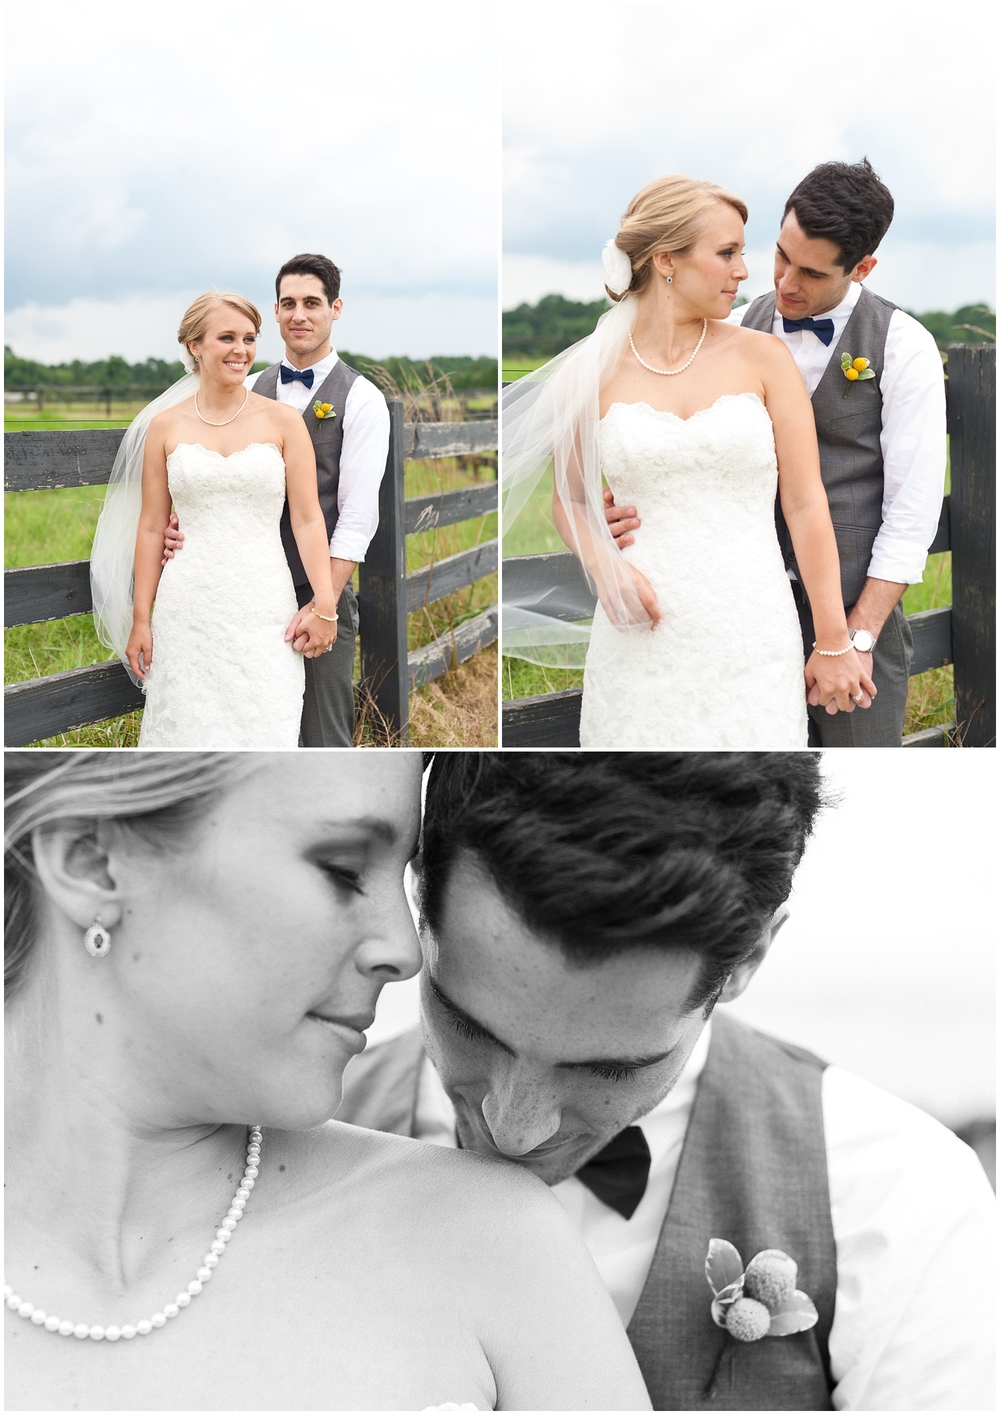 BloomandLo_PeteandAshley_Smithonia_Farm_Wedding_Blog_0026.jpg